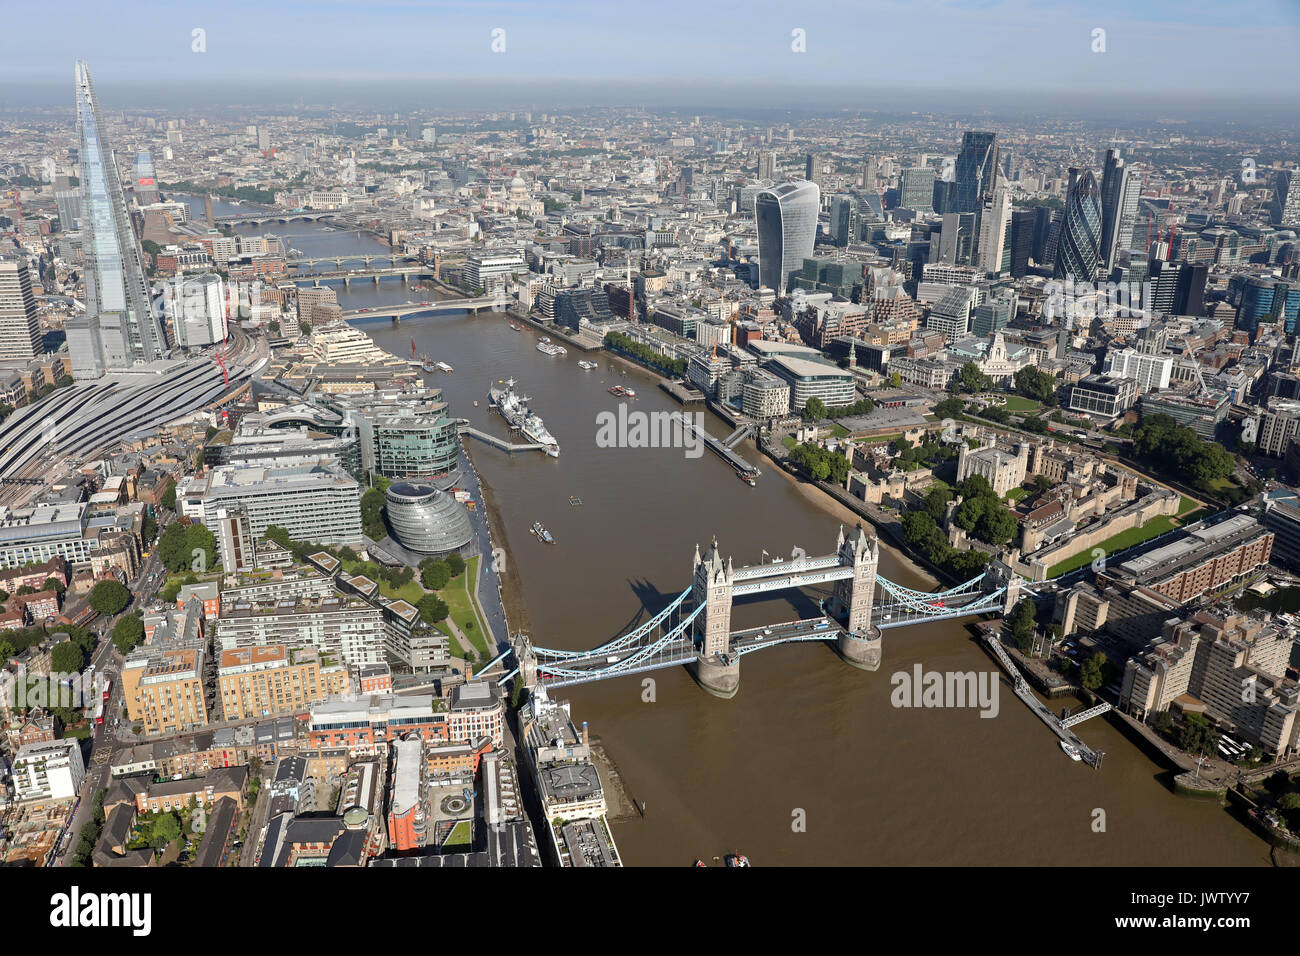 Vue aérienne de Tower Bridge, l'Écharde de Thames, et ville de Londres Photo Stock